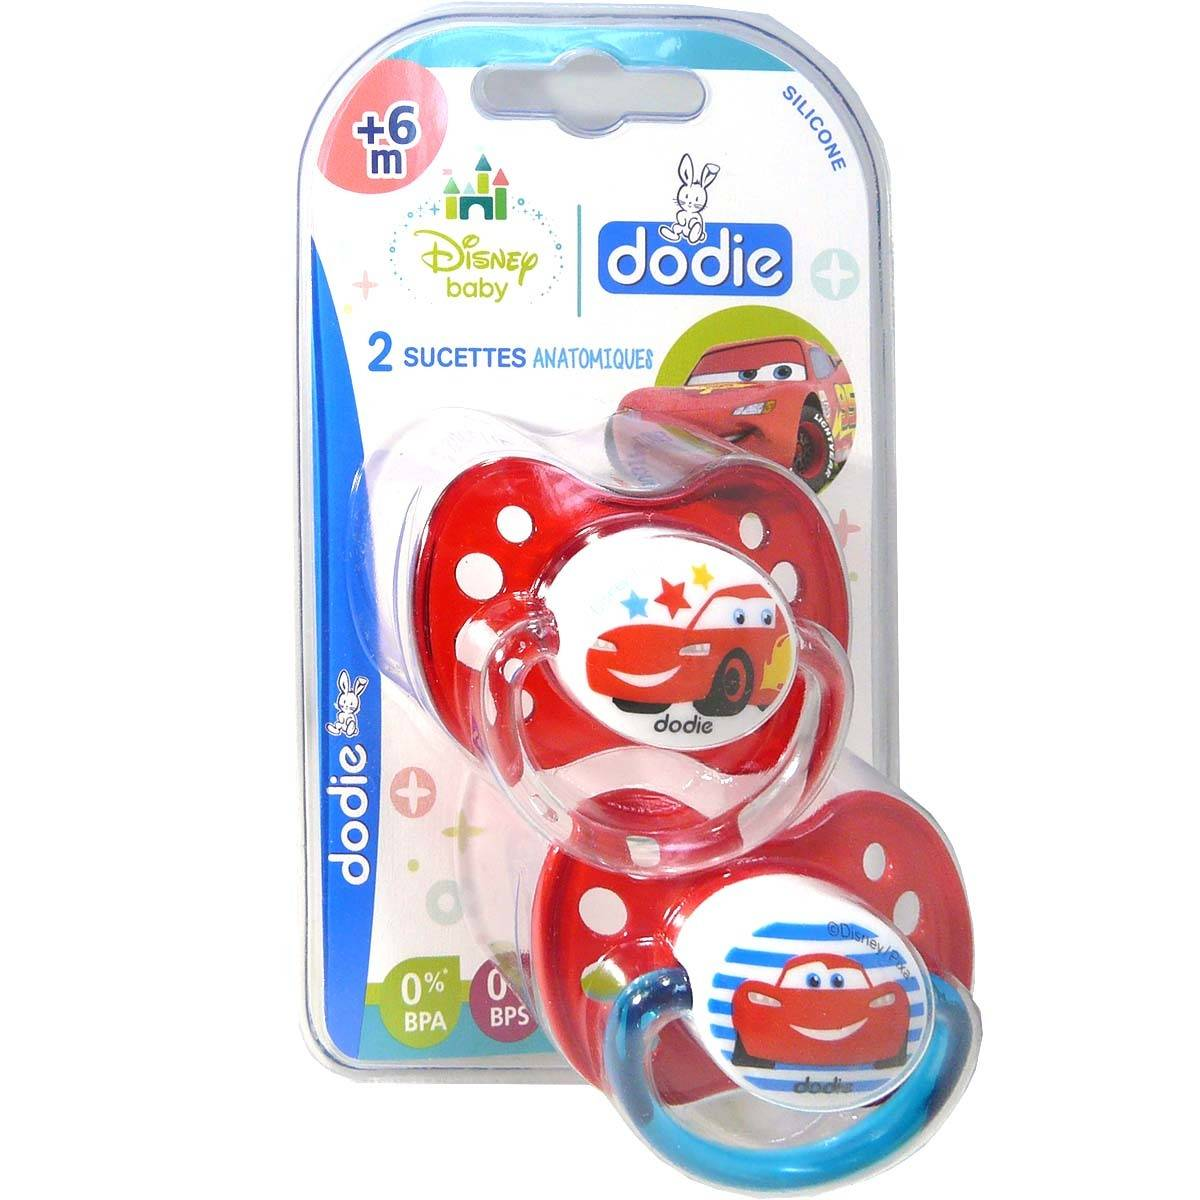 Dodie sucette anatomique silicone cars +6m